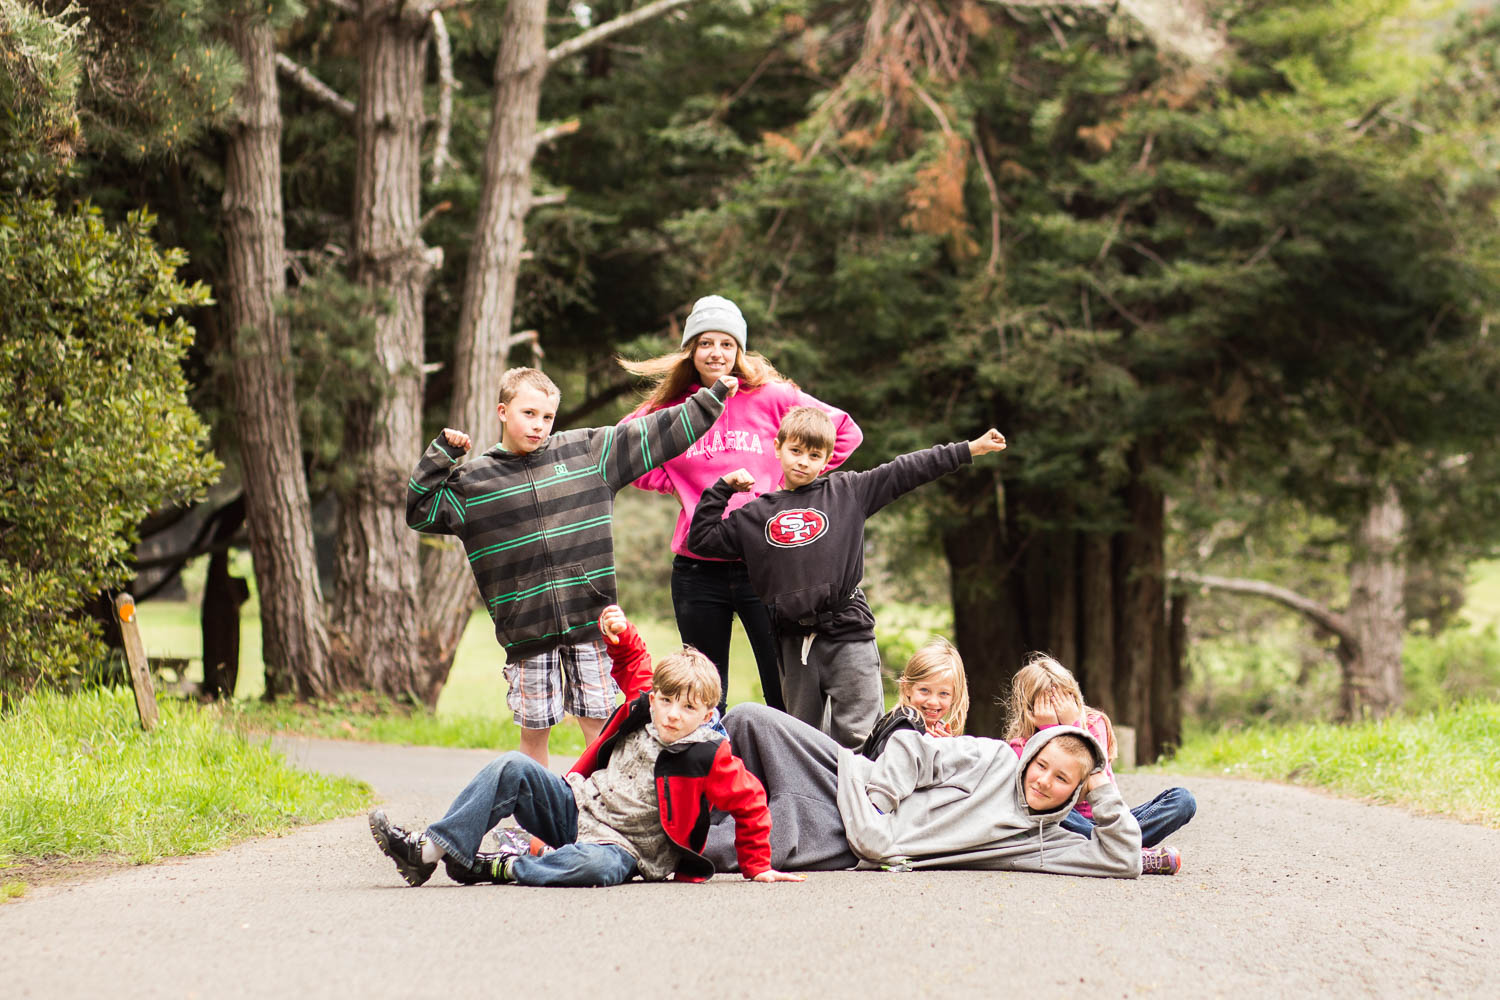 7 kids sitting in the middle of the road on a camping adventure posing for a picture